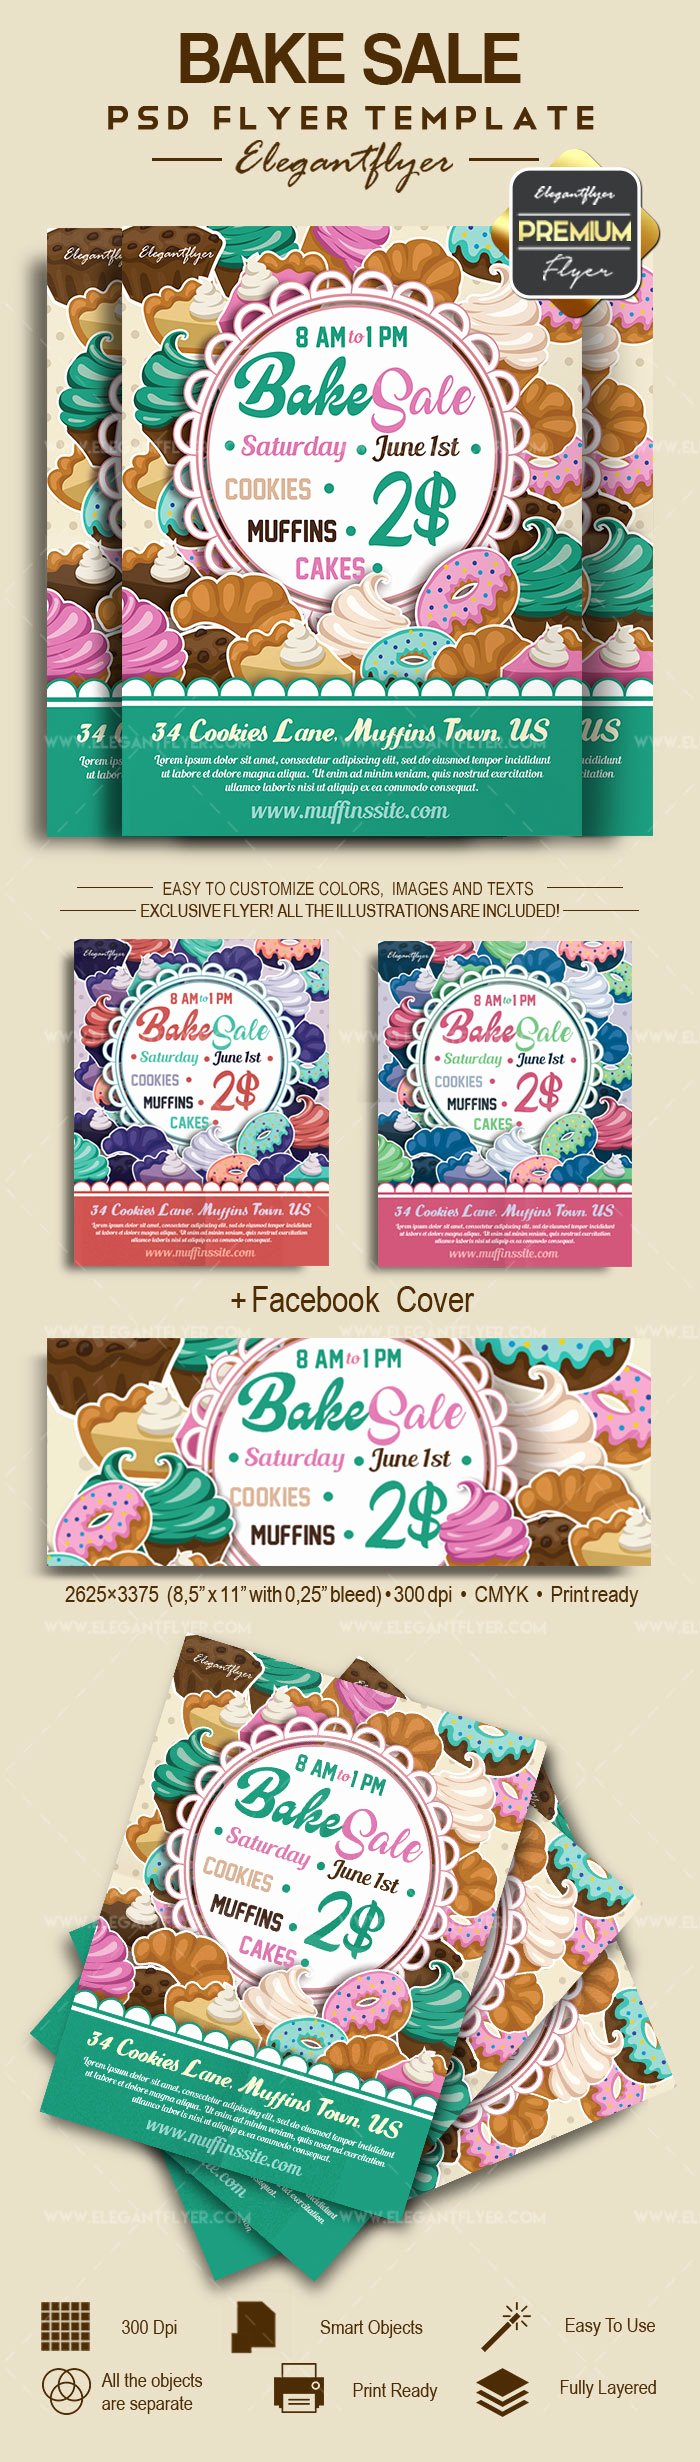 Bake Sale Flyer Template New Bake Sale Invitation – by Elegantflyer